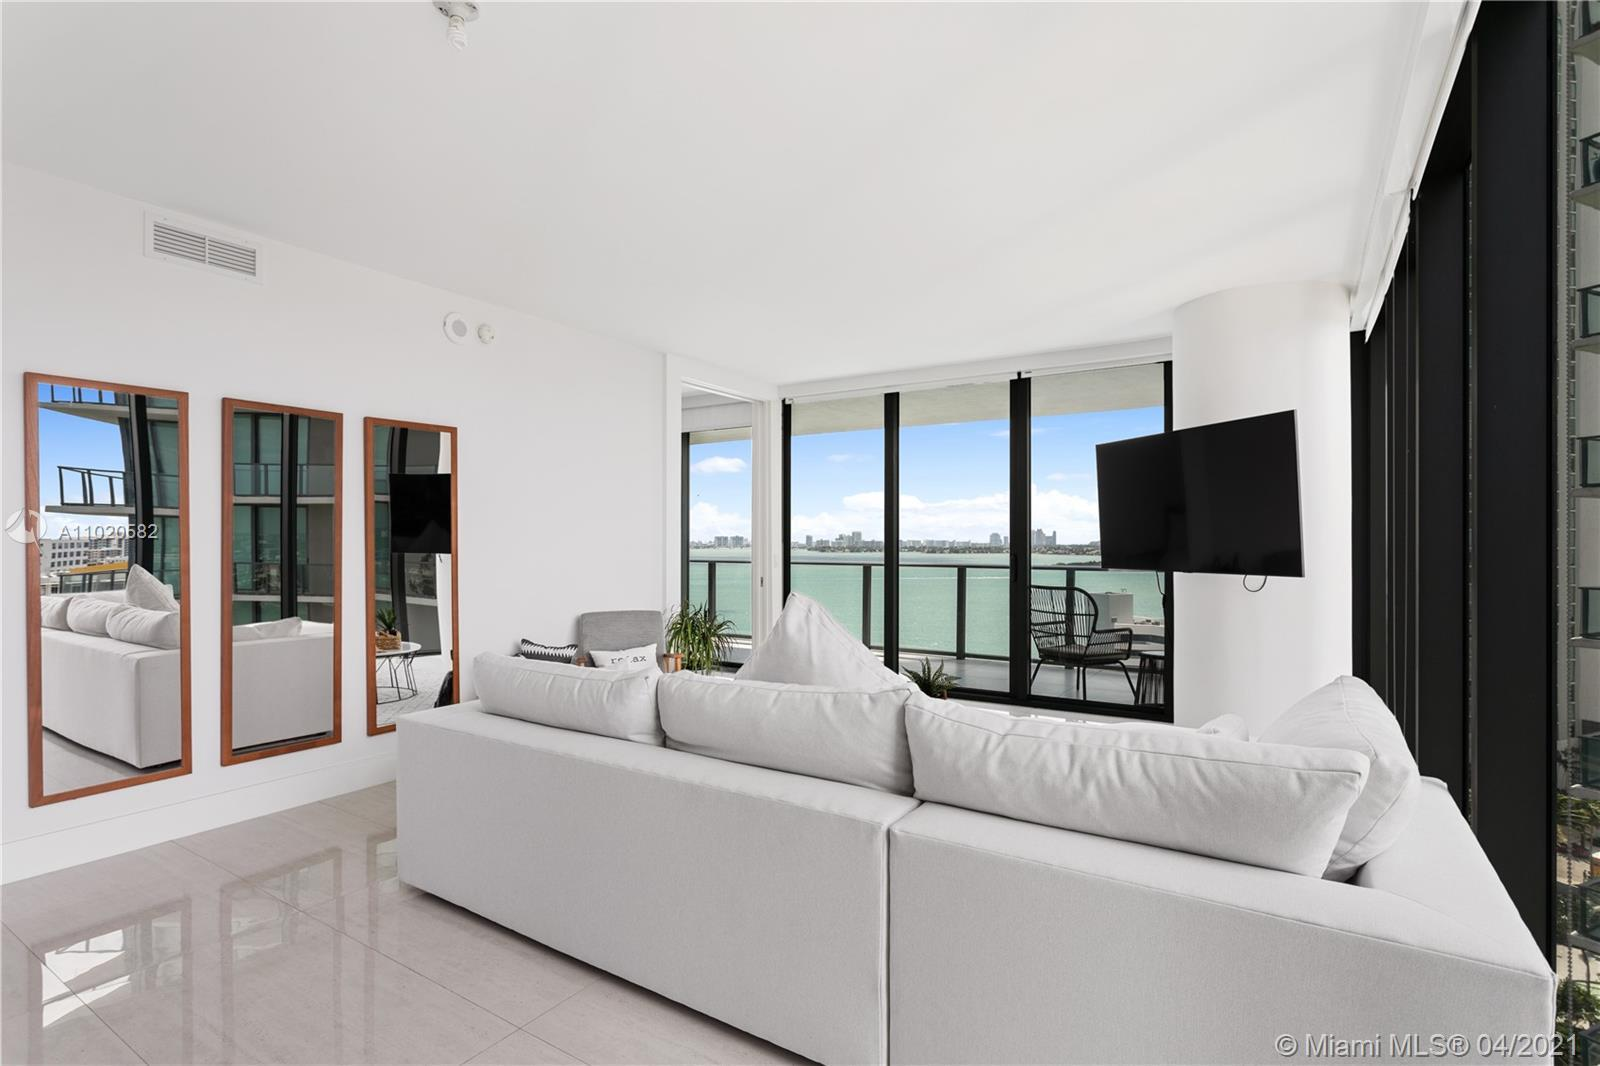 Corner Unit 3 Beds 3.5 Baths + Den with direct and unobstructed water views. Fully finished with por